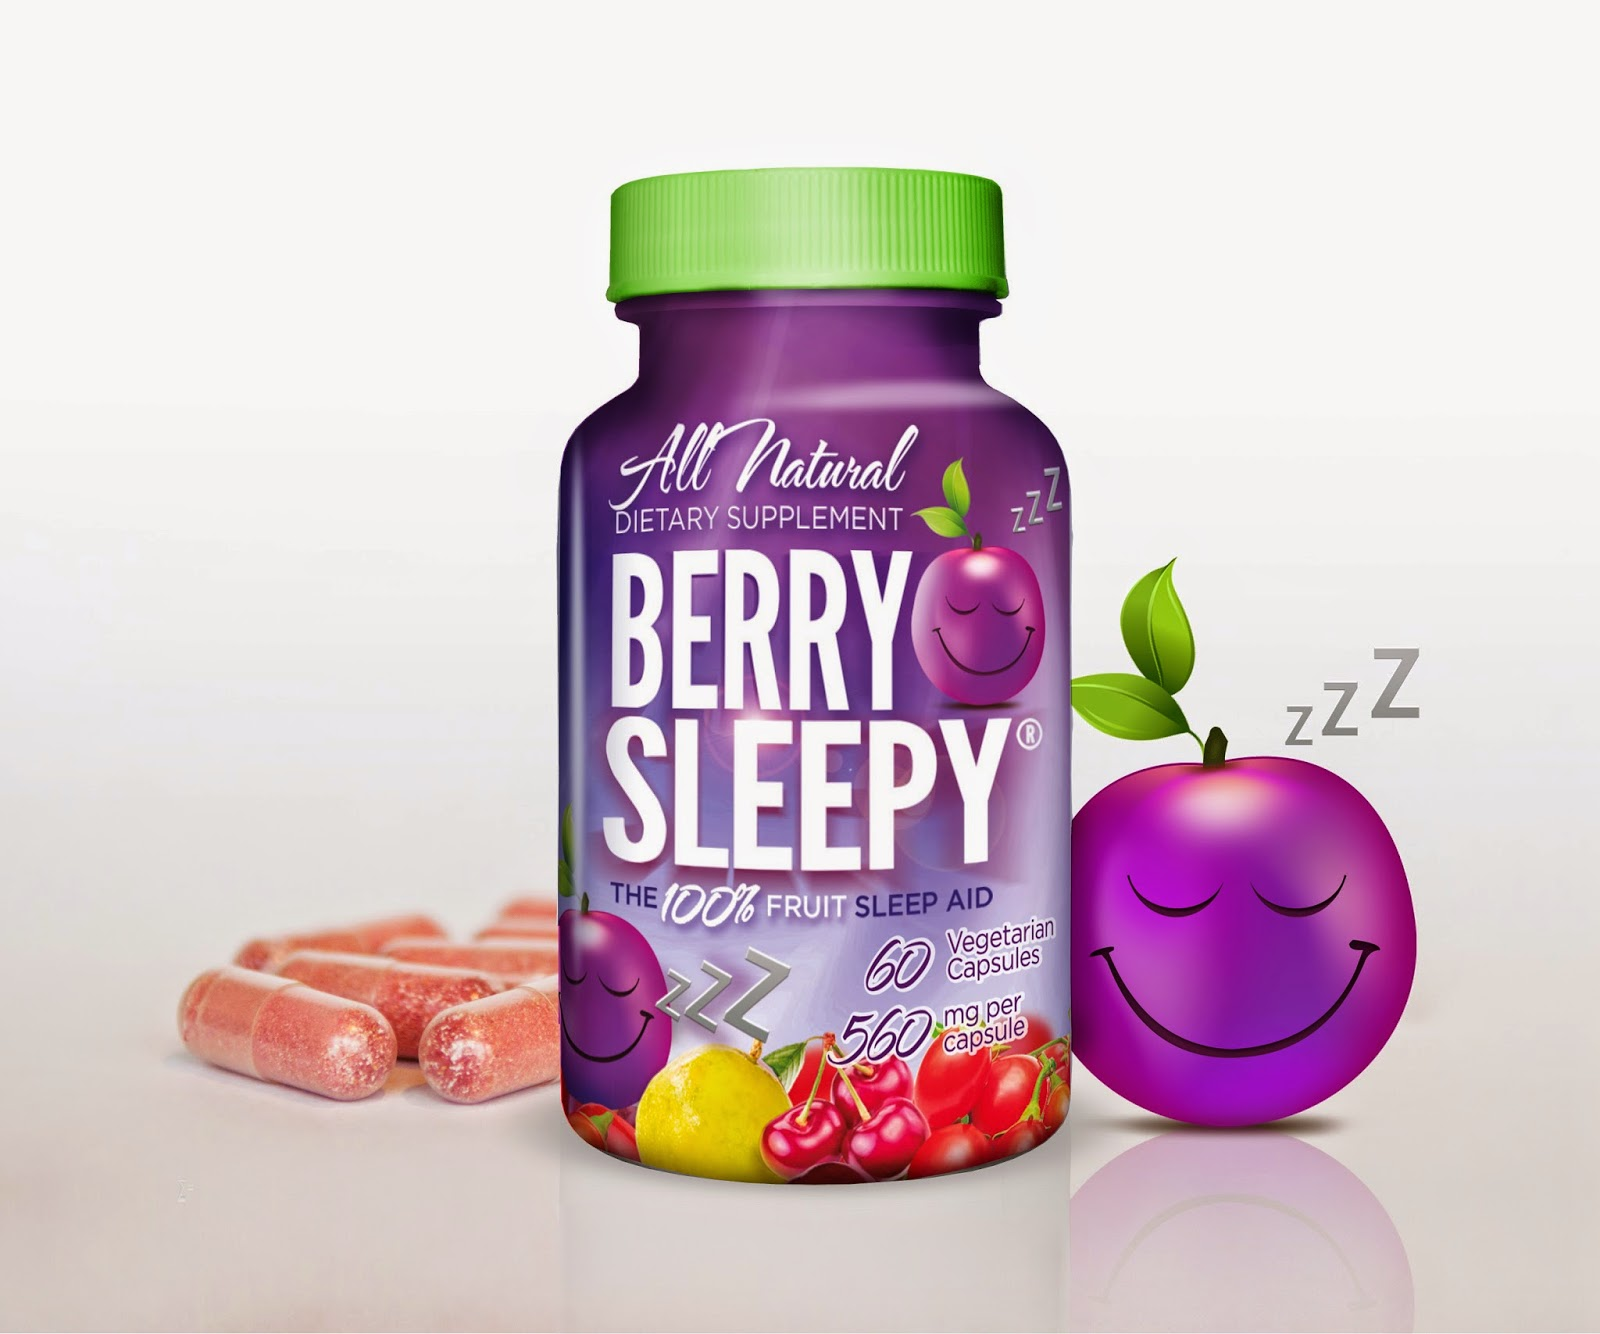 http://www.amazon.com/Berry-Sleepy-Fruit-Based-Recommended-Satisfaction/dp/B00MS942O6